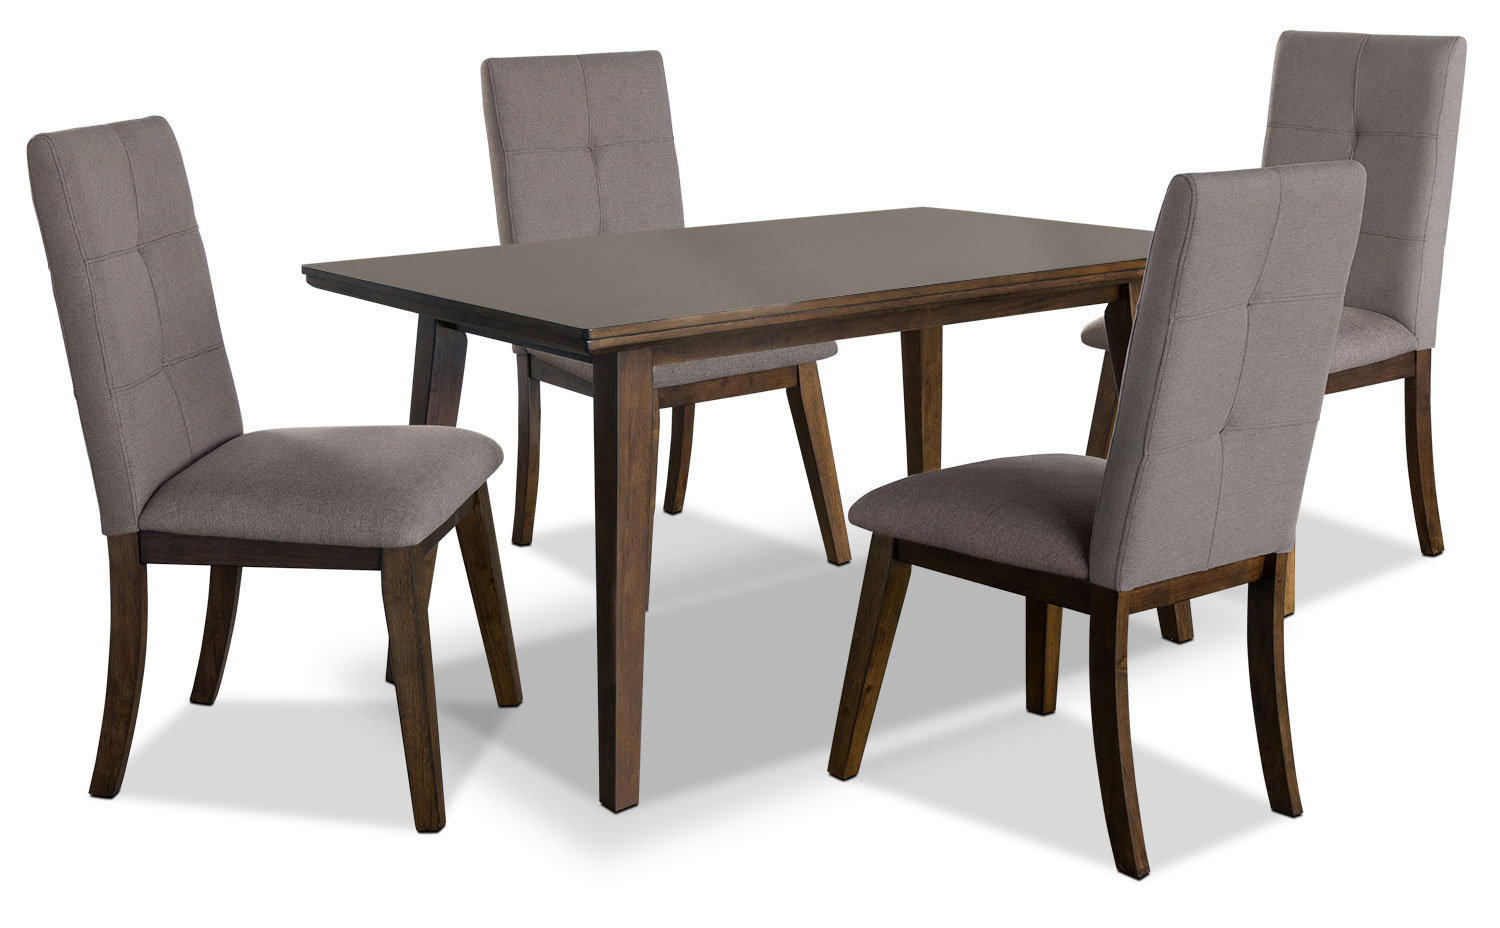 Dining Room Furniture - Chelsea 5-Piece Dining Package with Brown Chairs